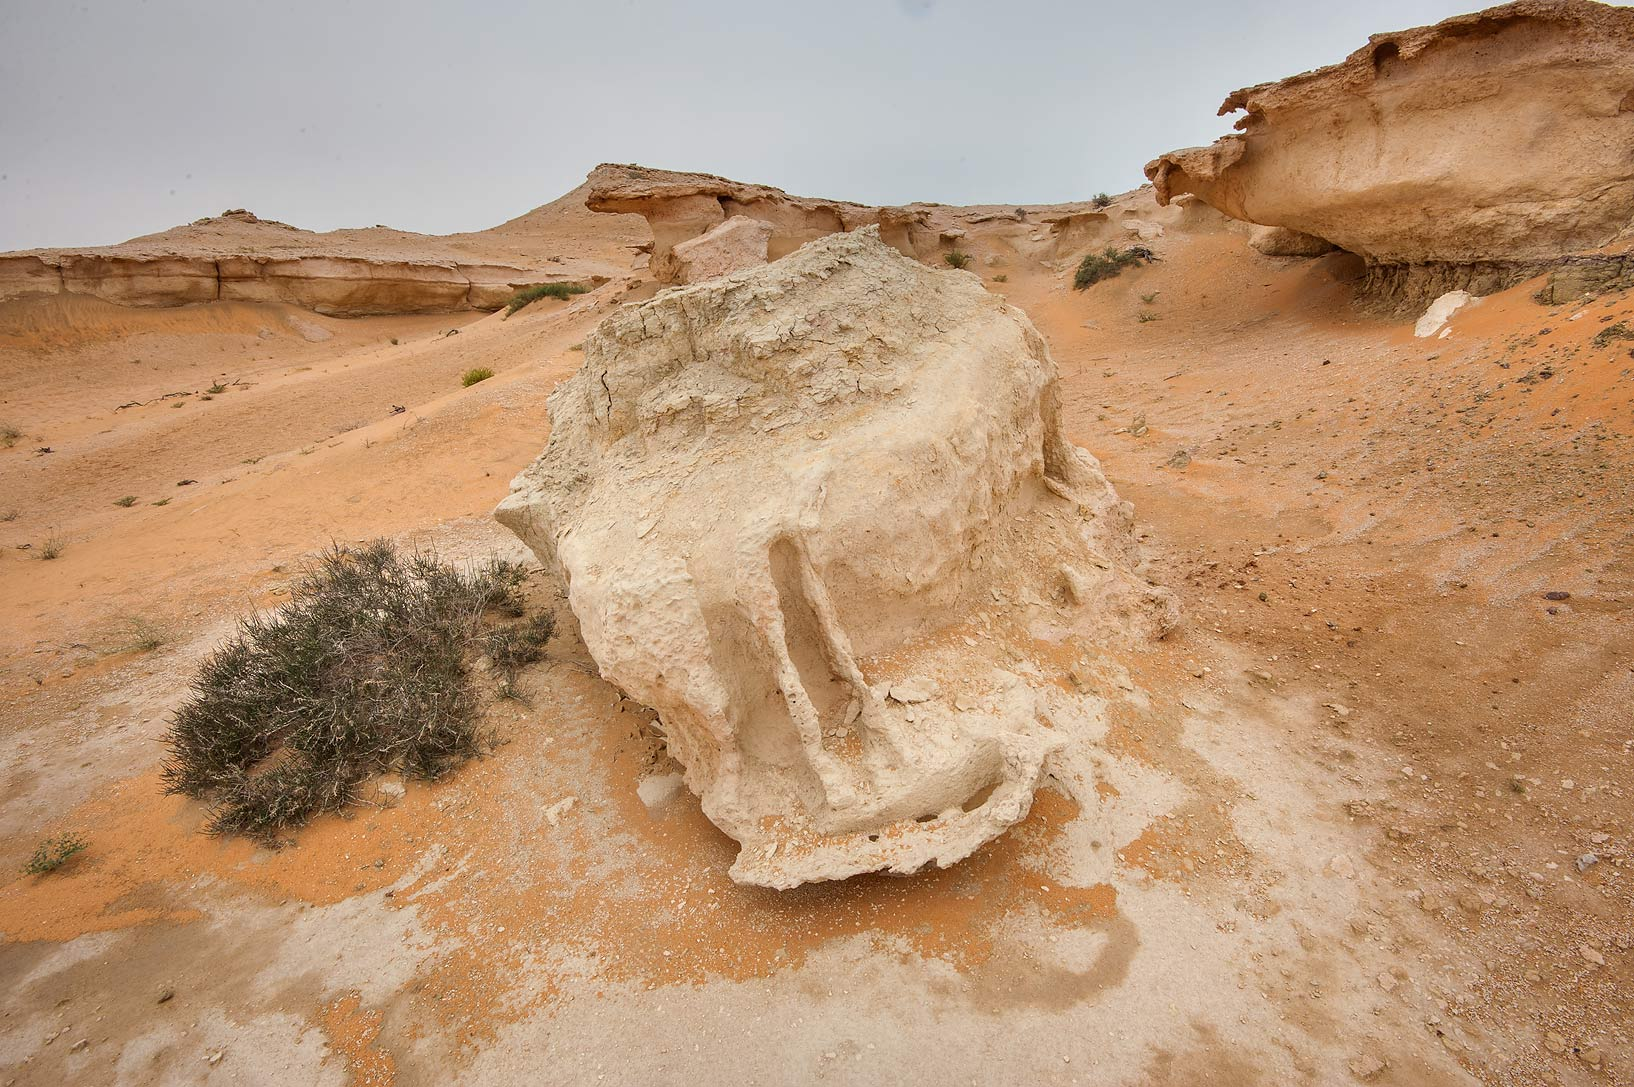 Detached piece of limestone cliffs in Maszhabiya...Reserve near Abu Samra. Southern Qatar